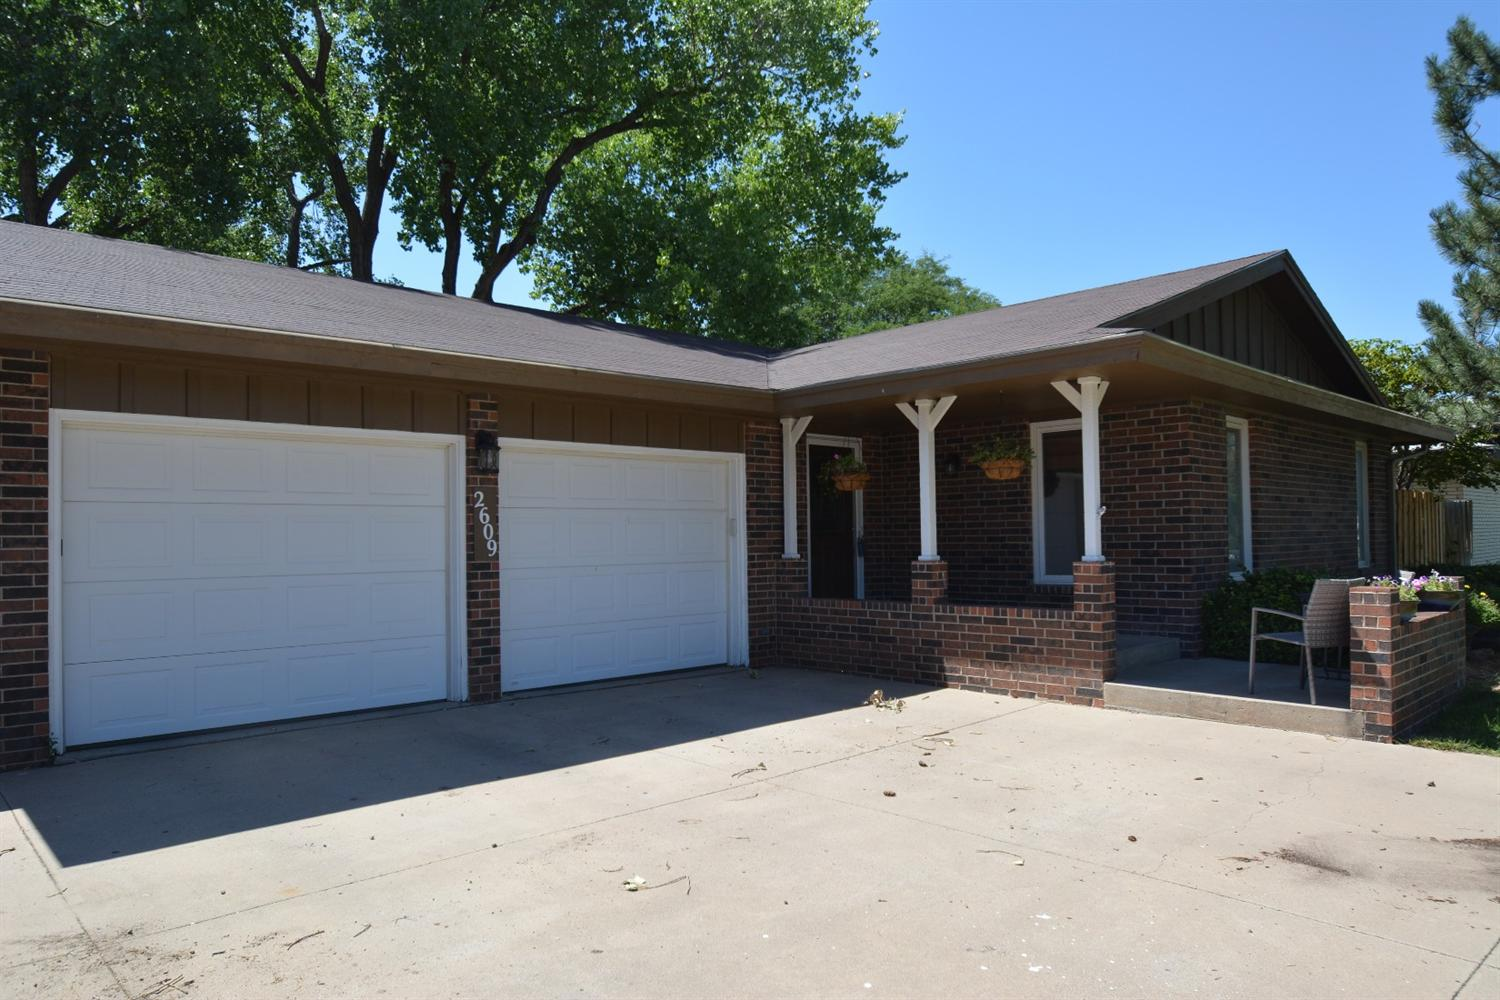 2609 N Belmont Pl, Garden City, KS 67846